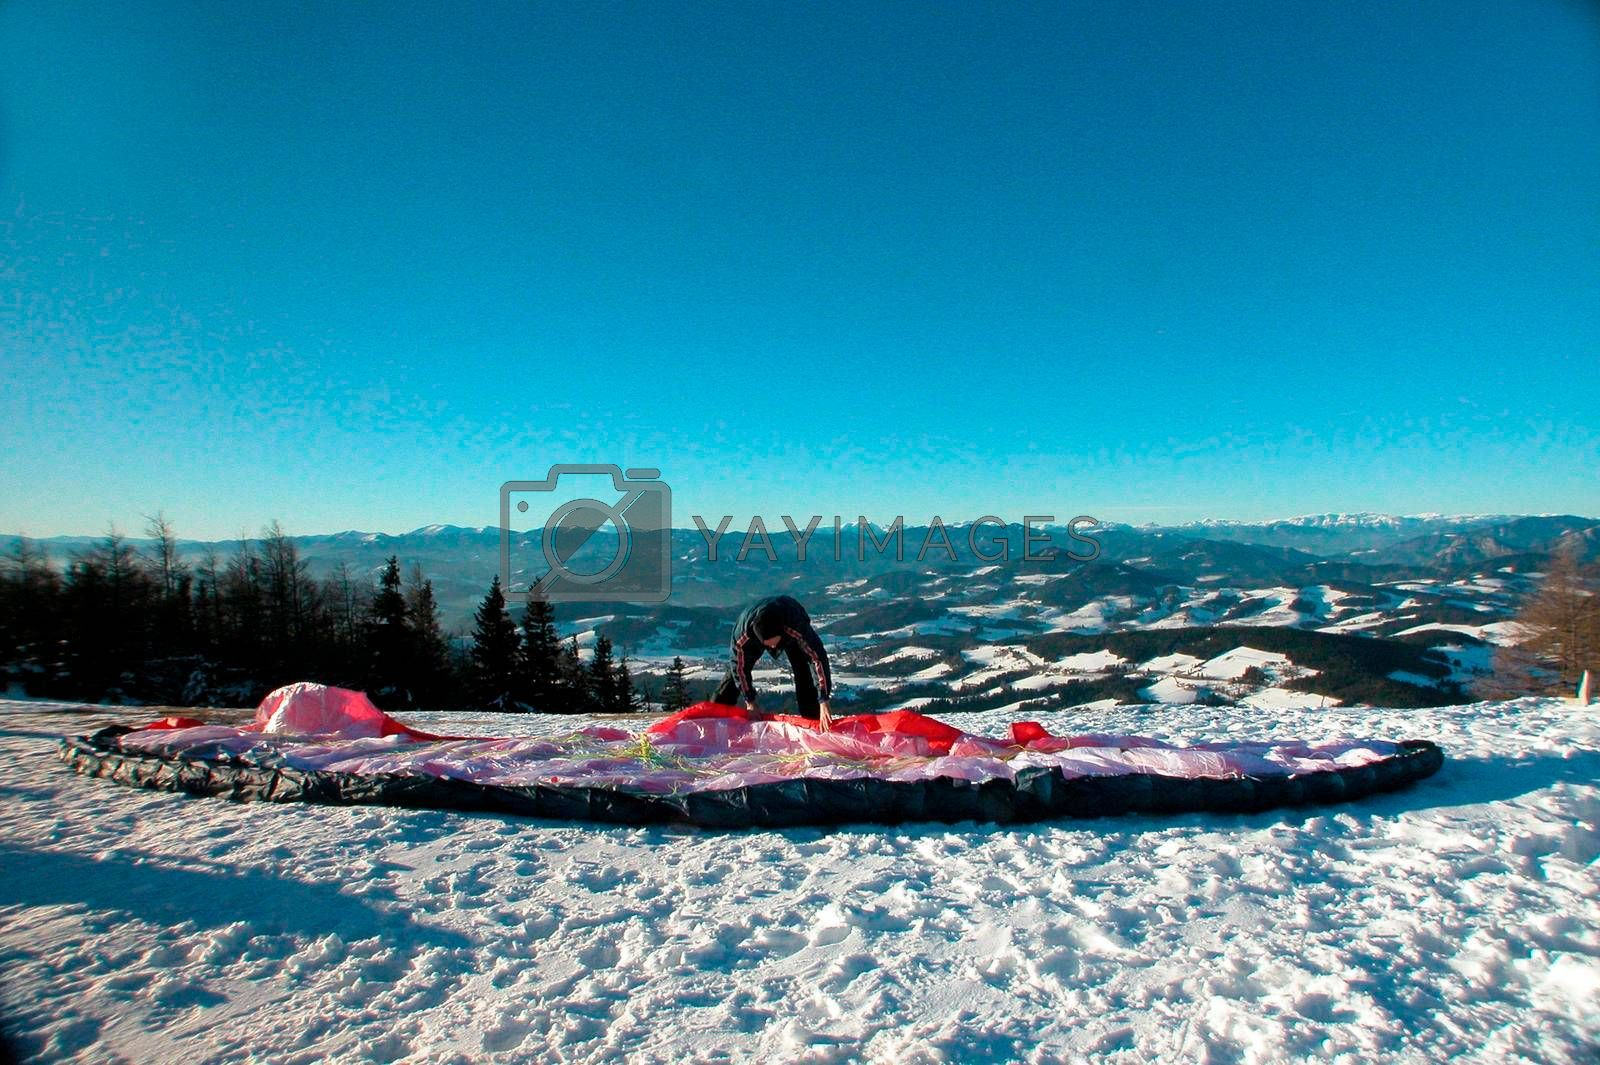 paragliding in the alps in winter, outdoor sports in the mountains